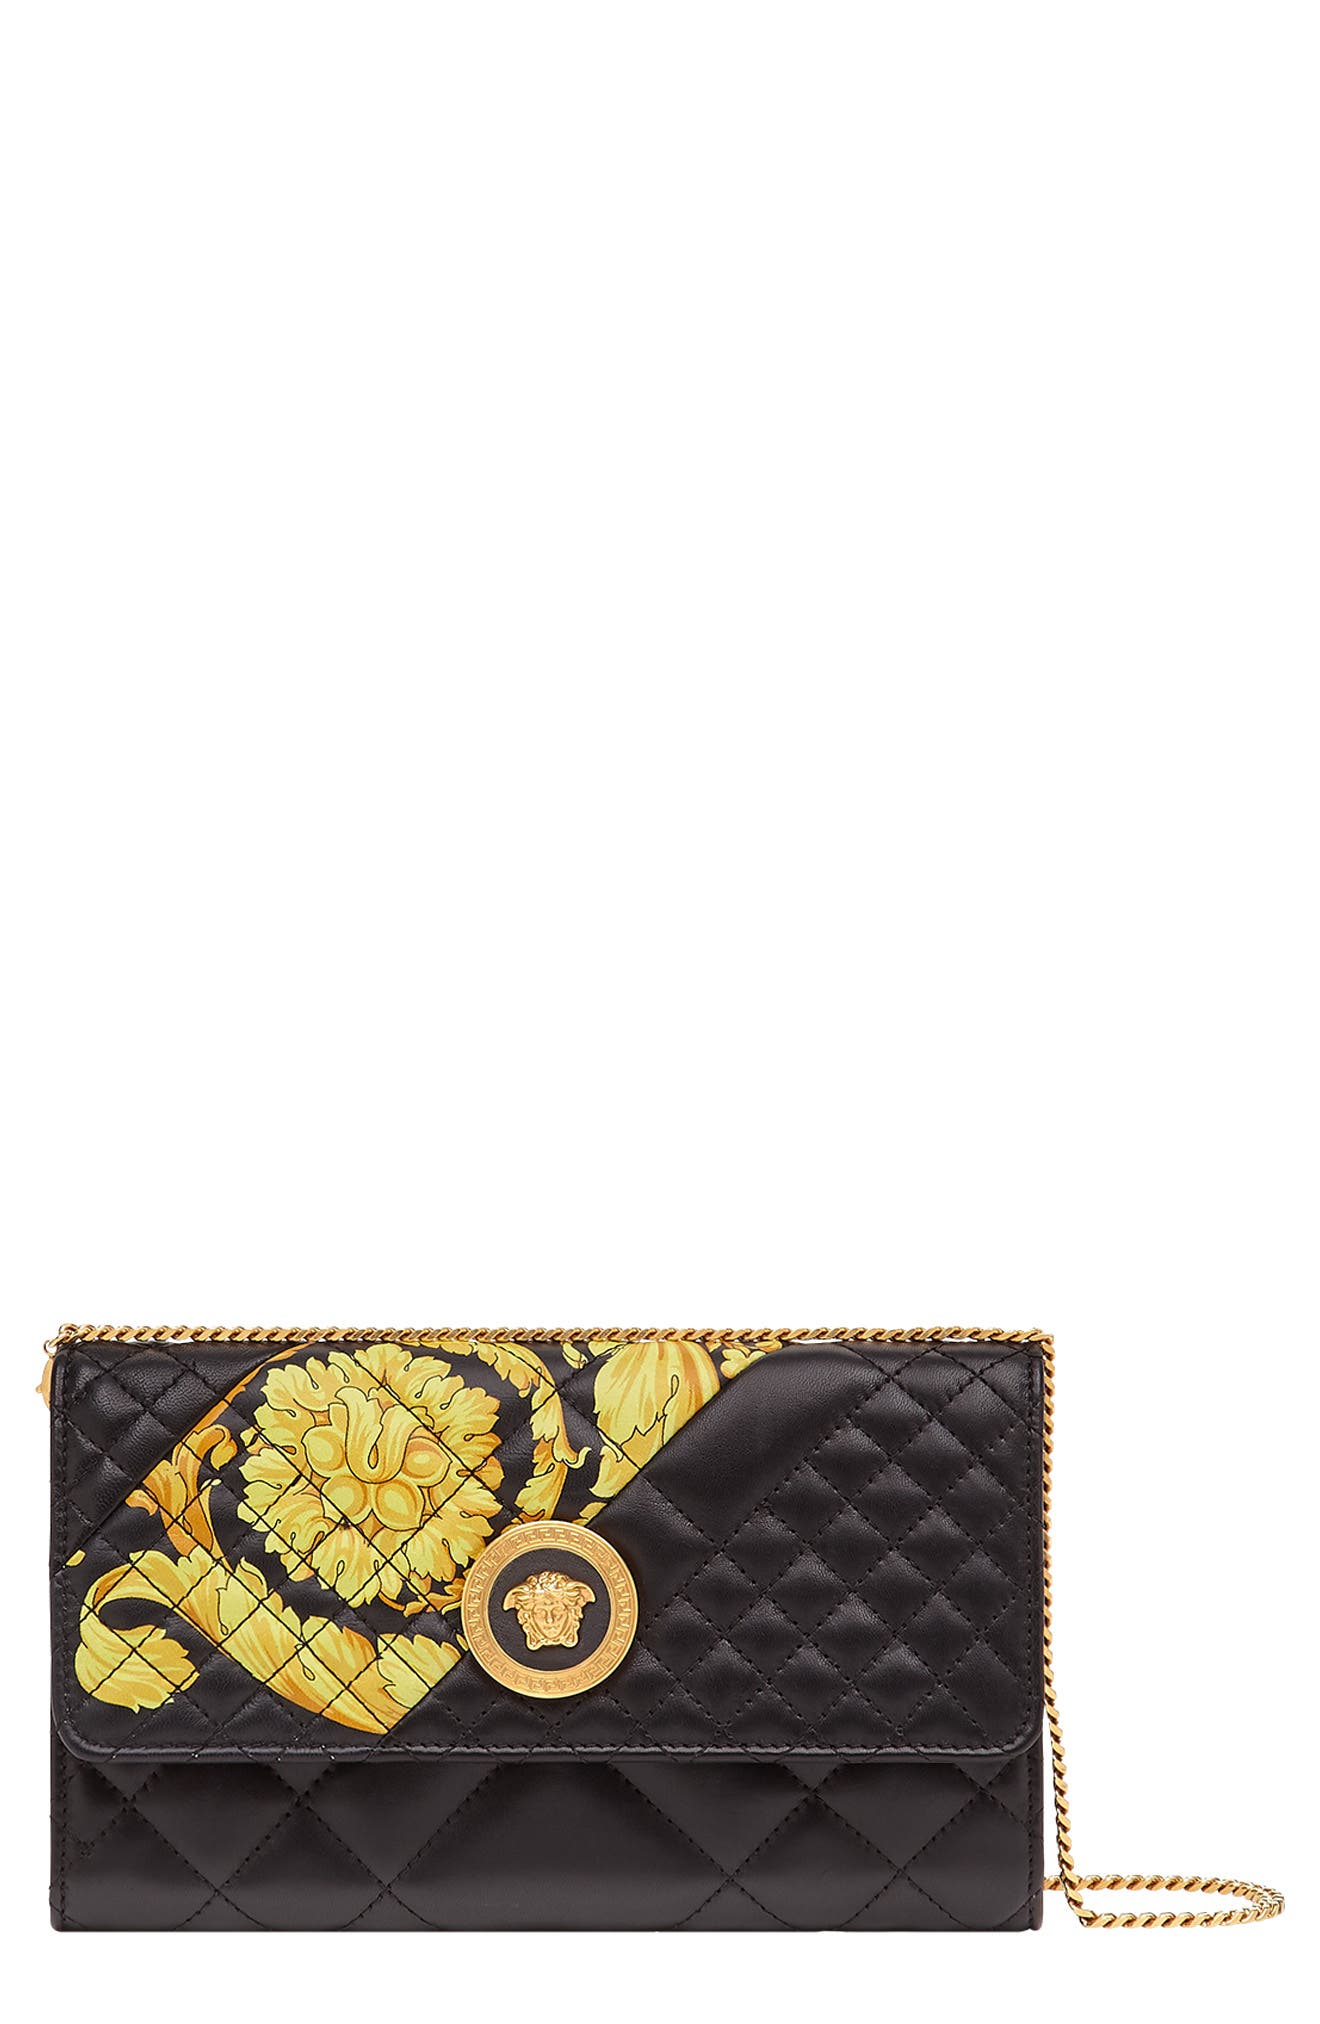 Baroque Icon Quilted Leather Crossbody Bag,                             Main thumbnail 1, color,                             BLACK MULTI/ TRIBUTE GOLD